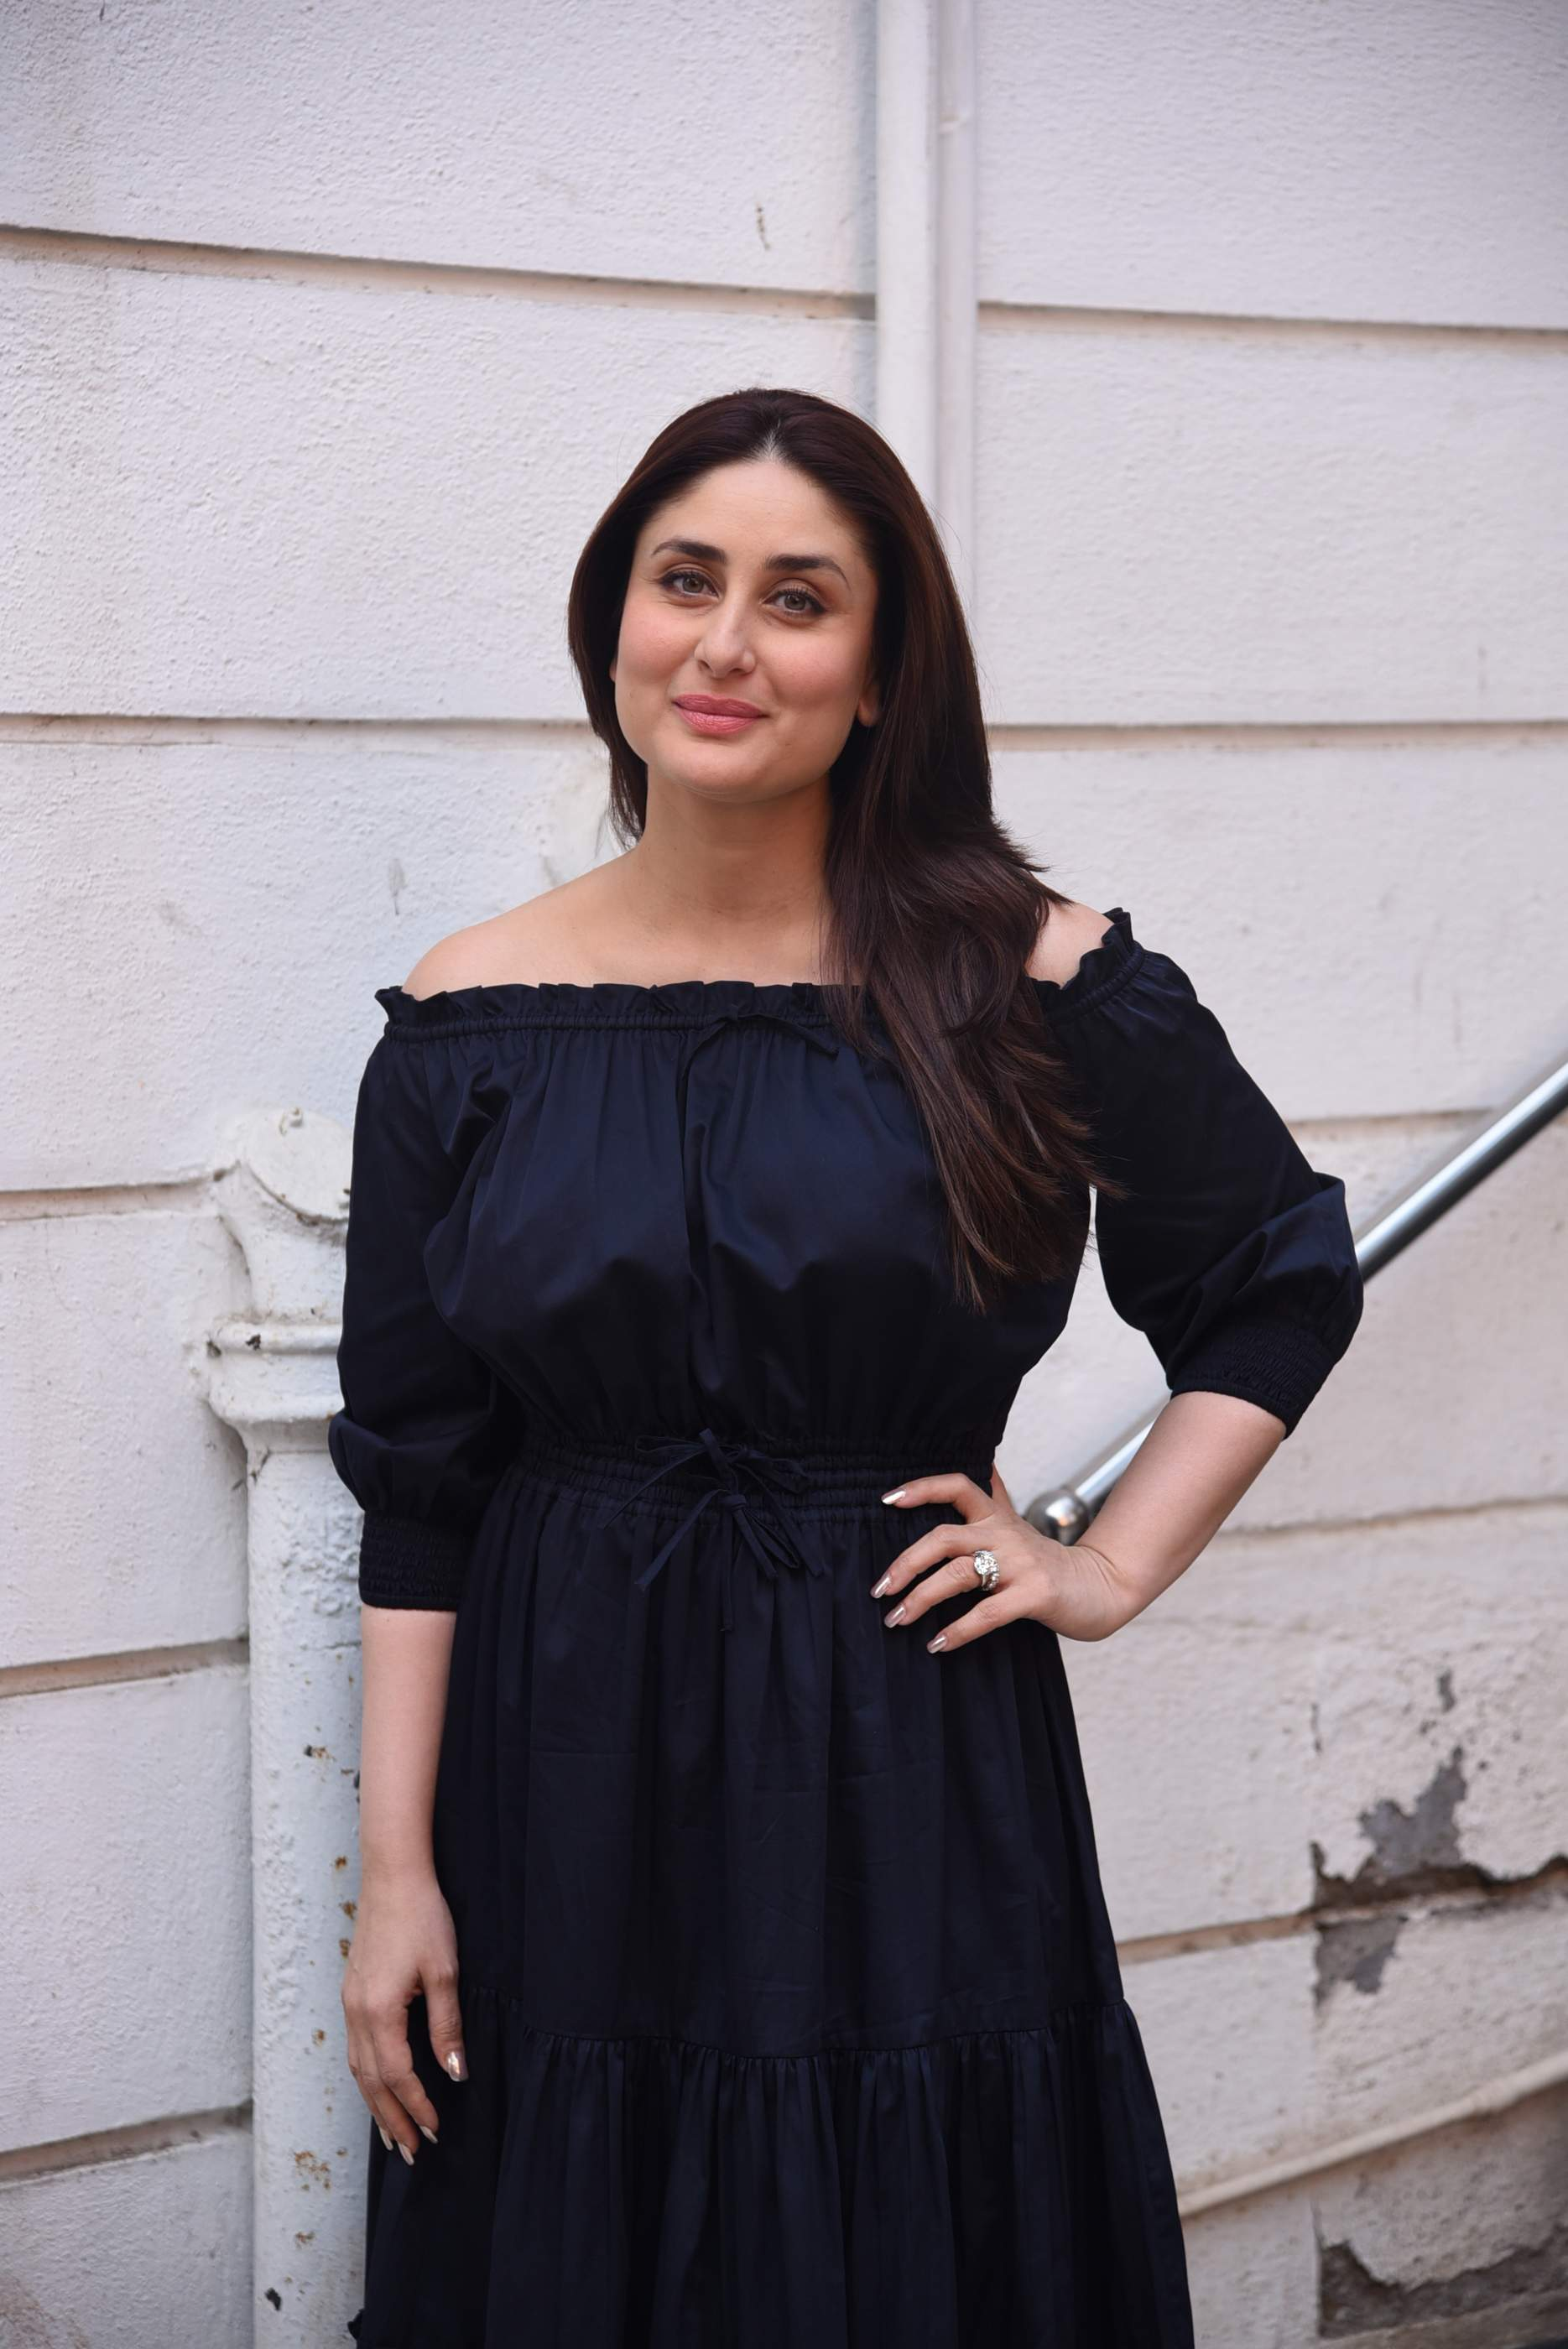 kareena kapoor Brand New Pics of Beautiful Kareena Kapoor Khan | Bollywood Kareena Rujuta Diwekar 26